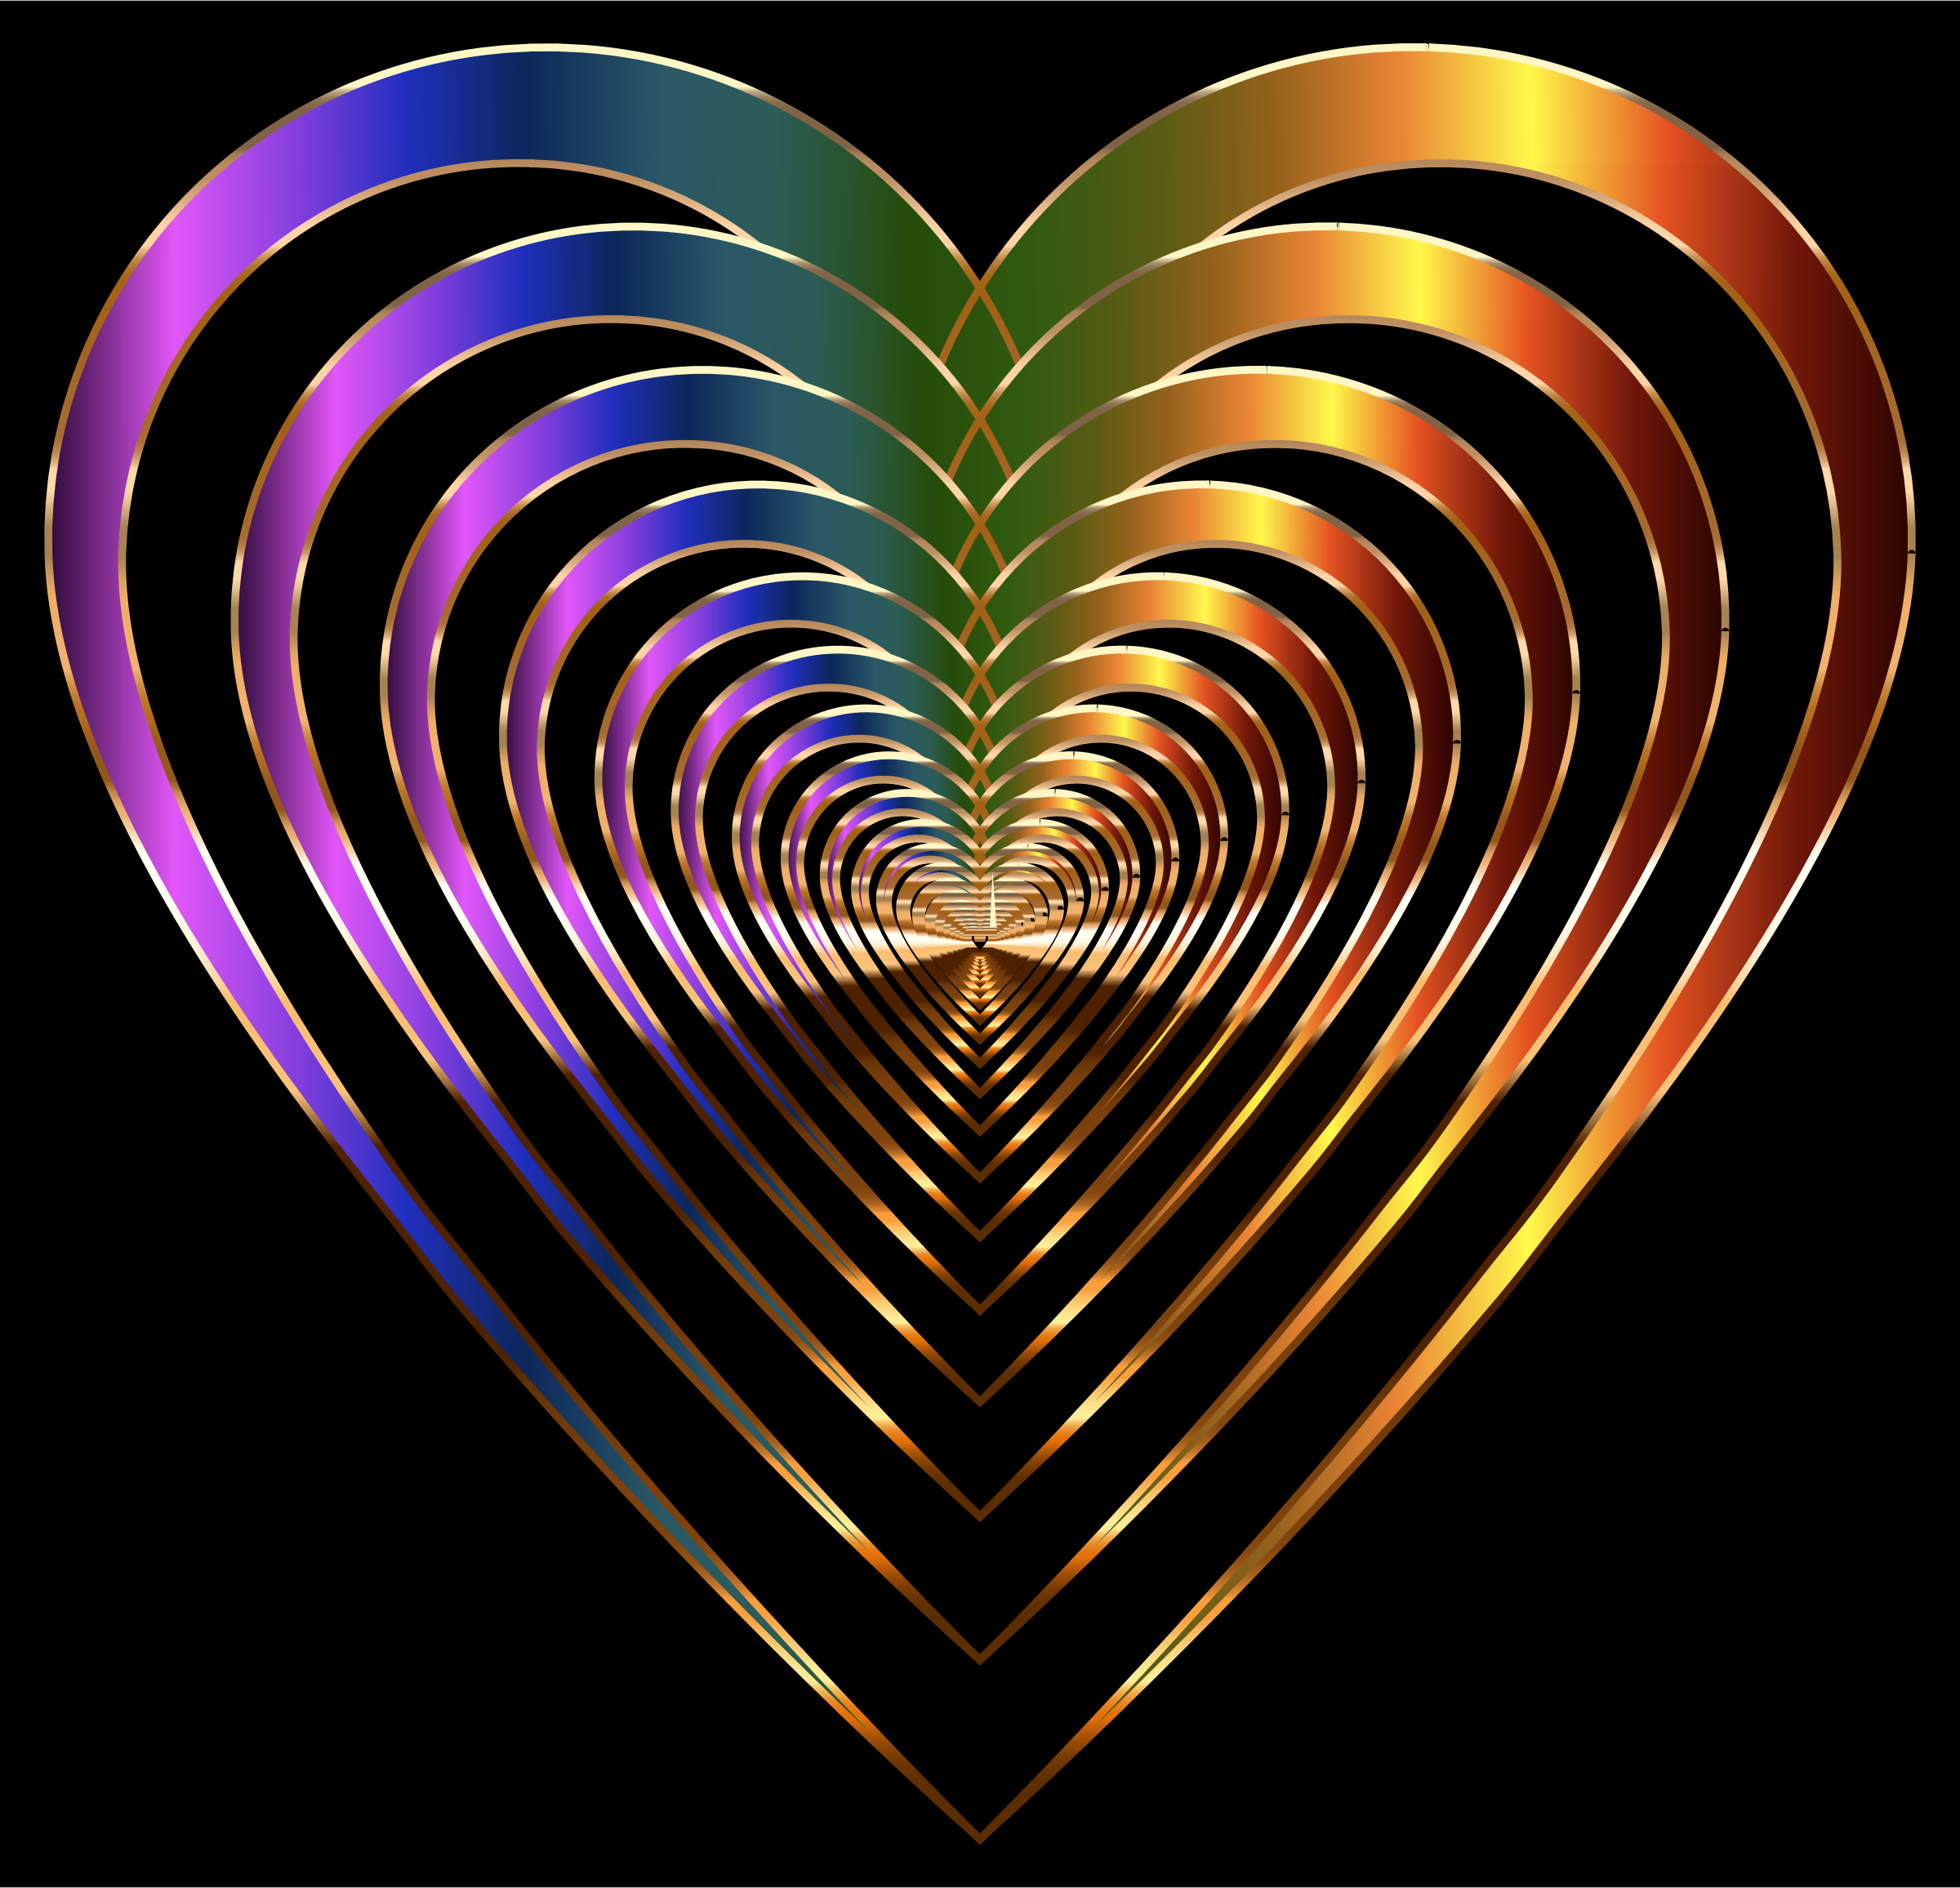 Chromatic Love 2 by GDJ